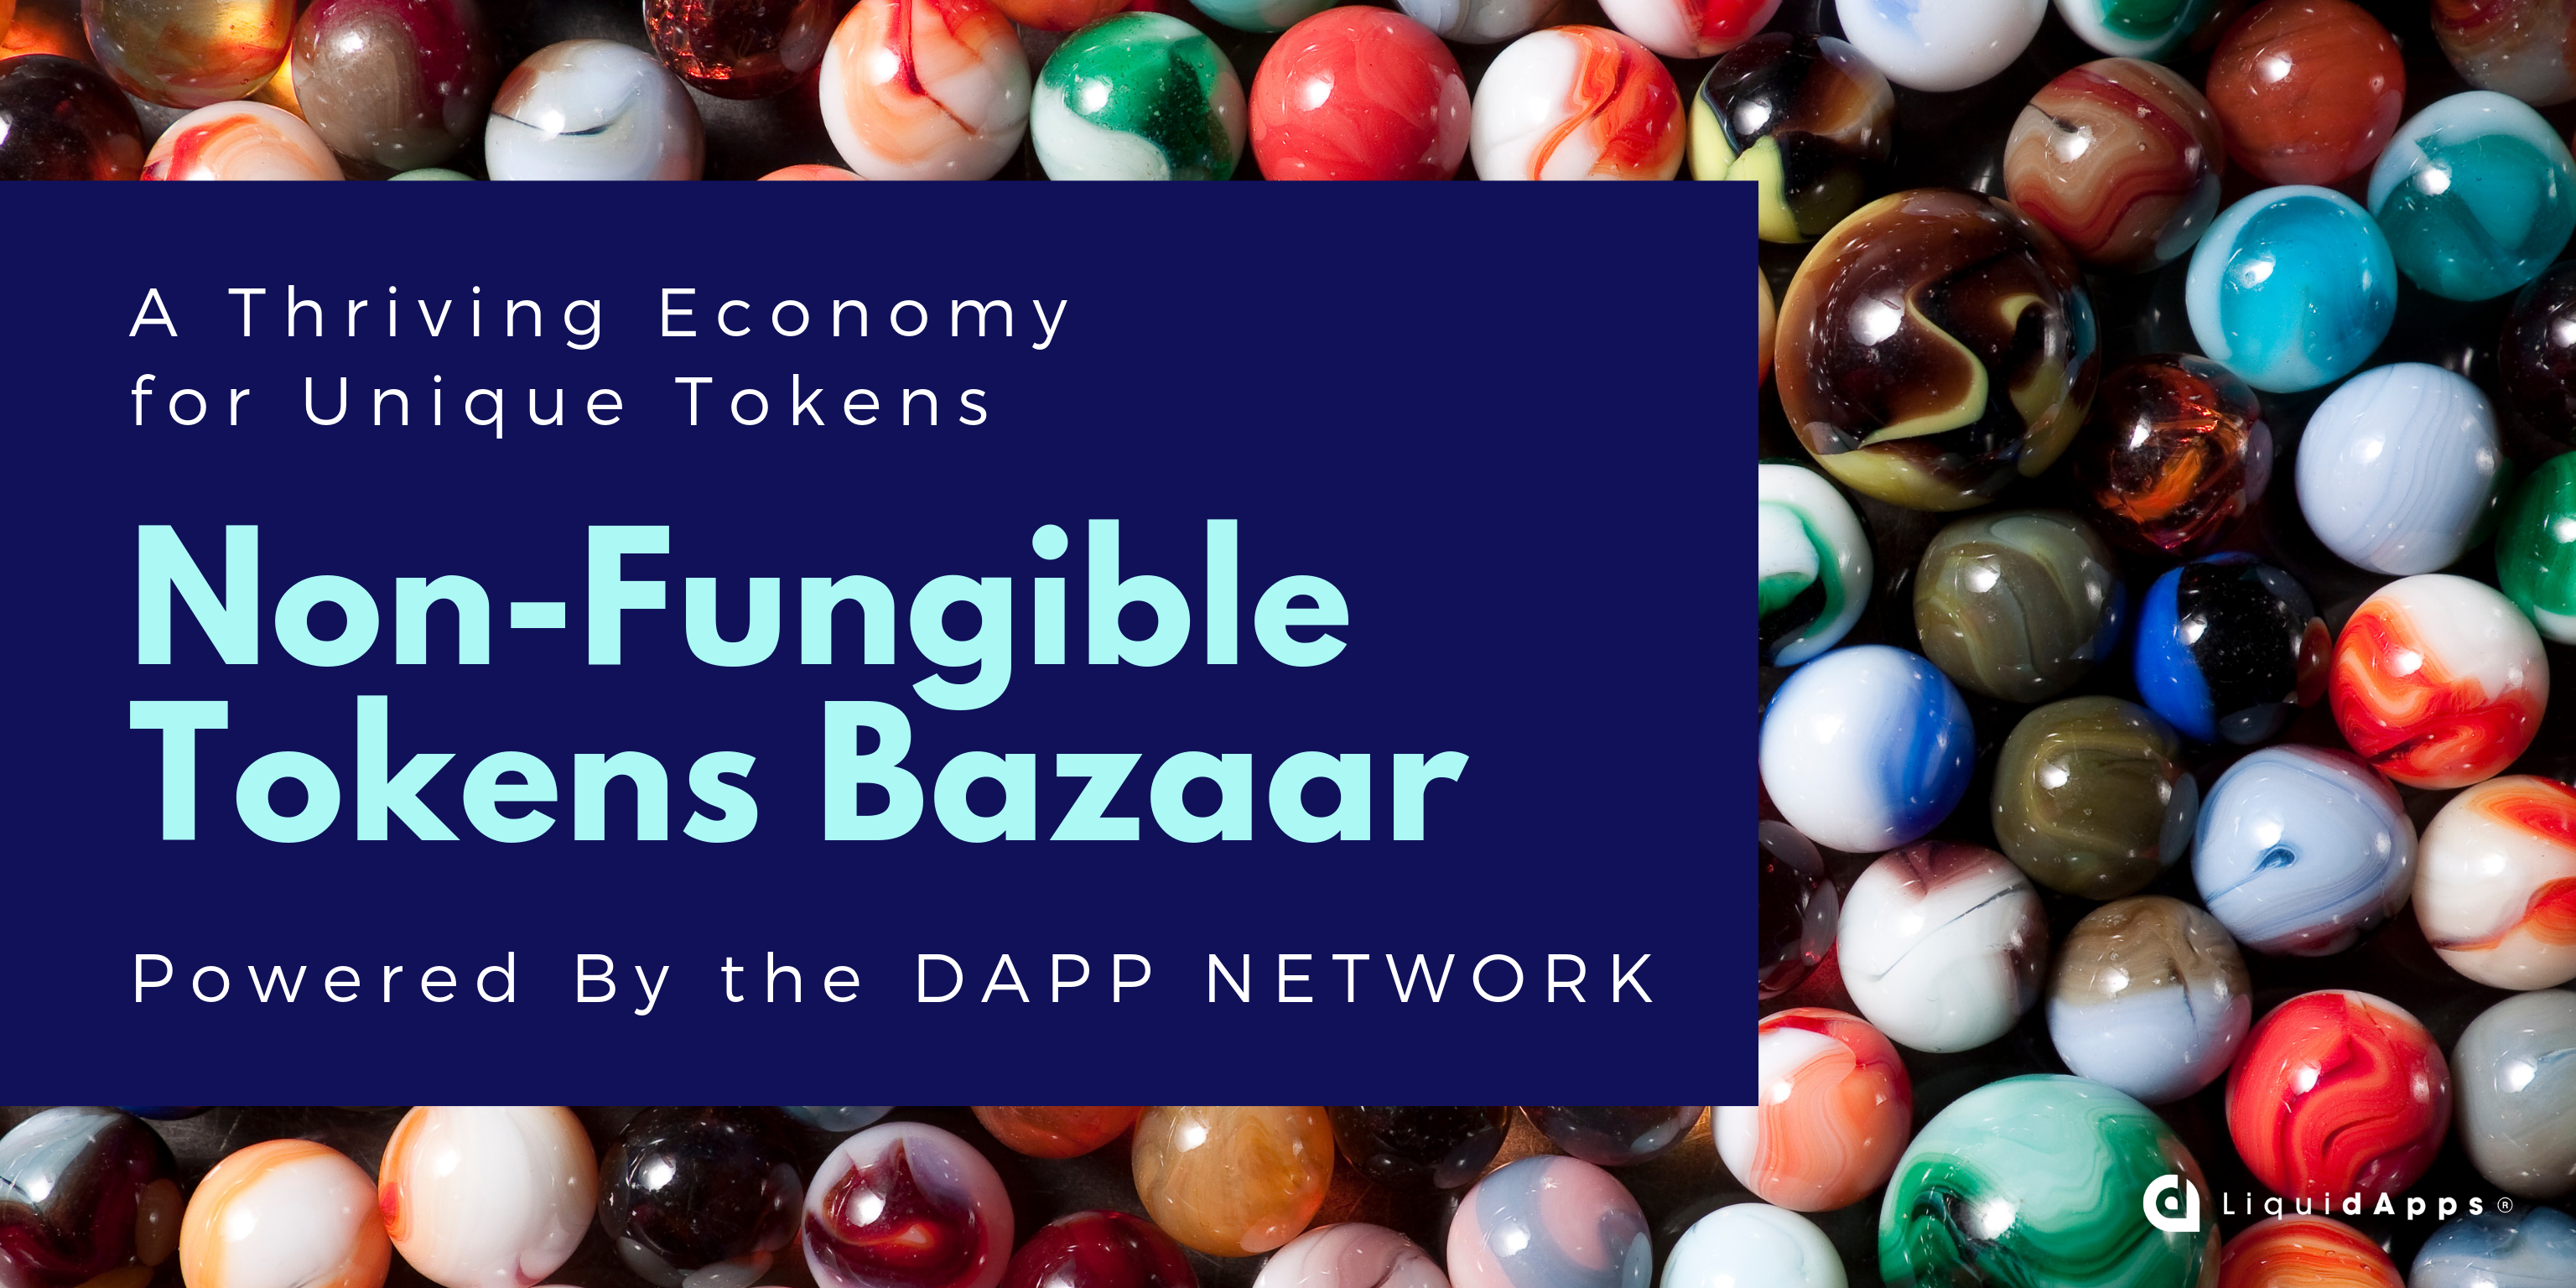 Non-Fungible Tokens Bazaar